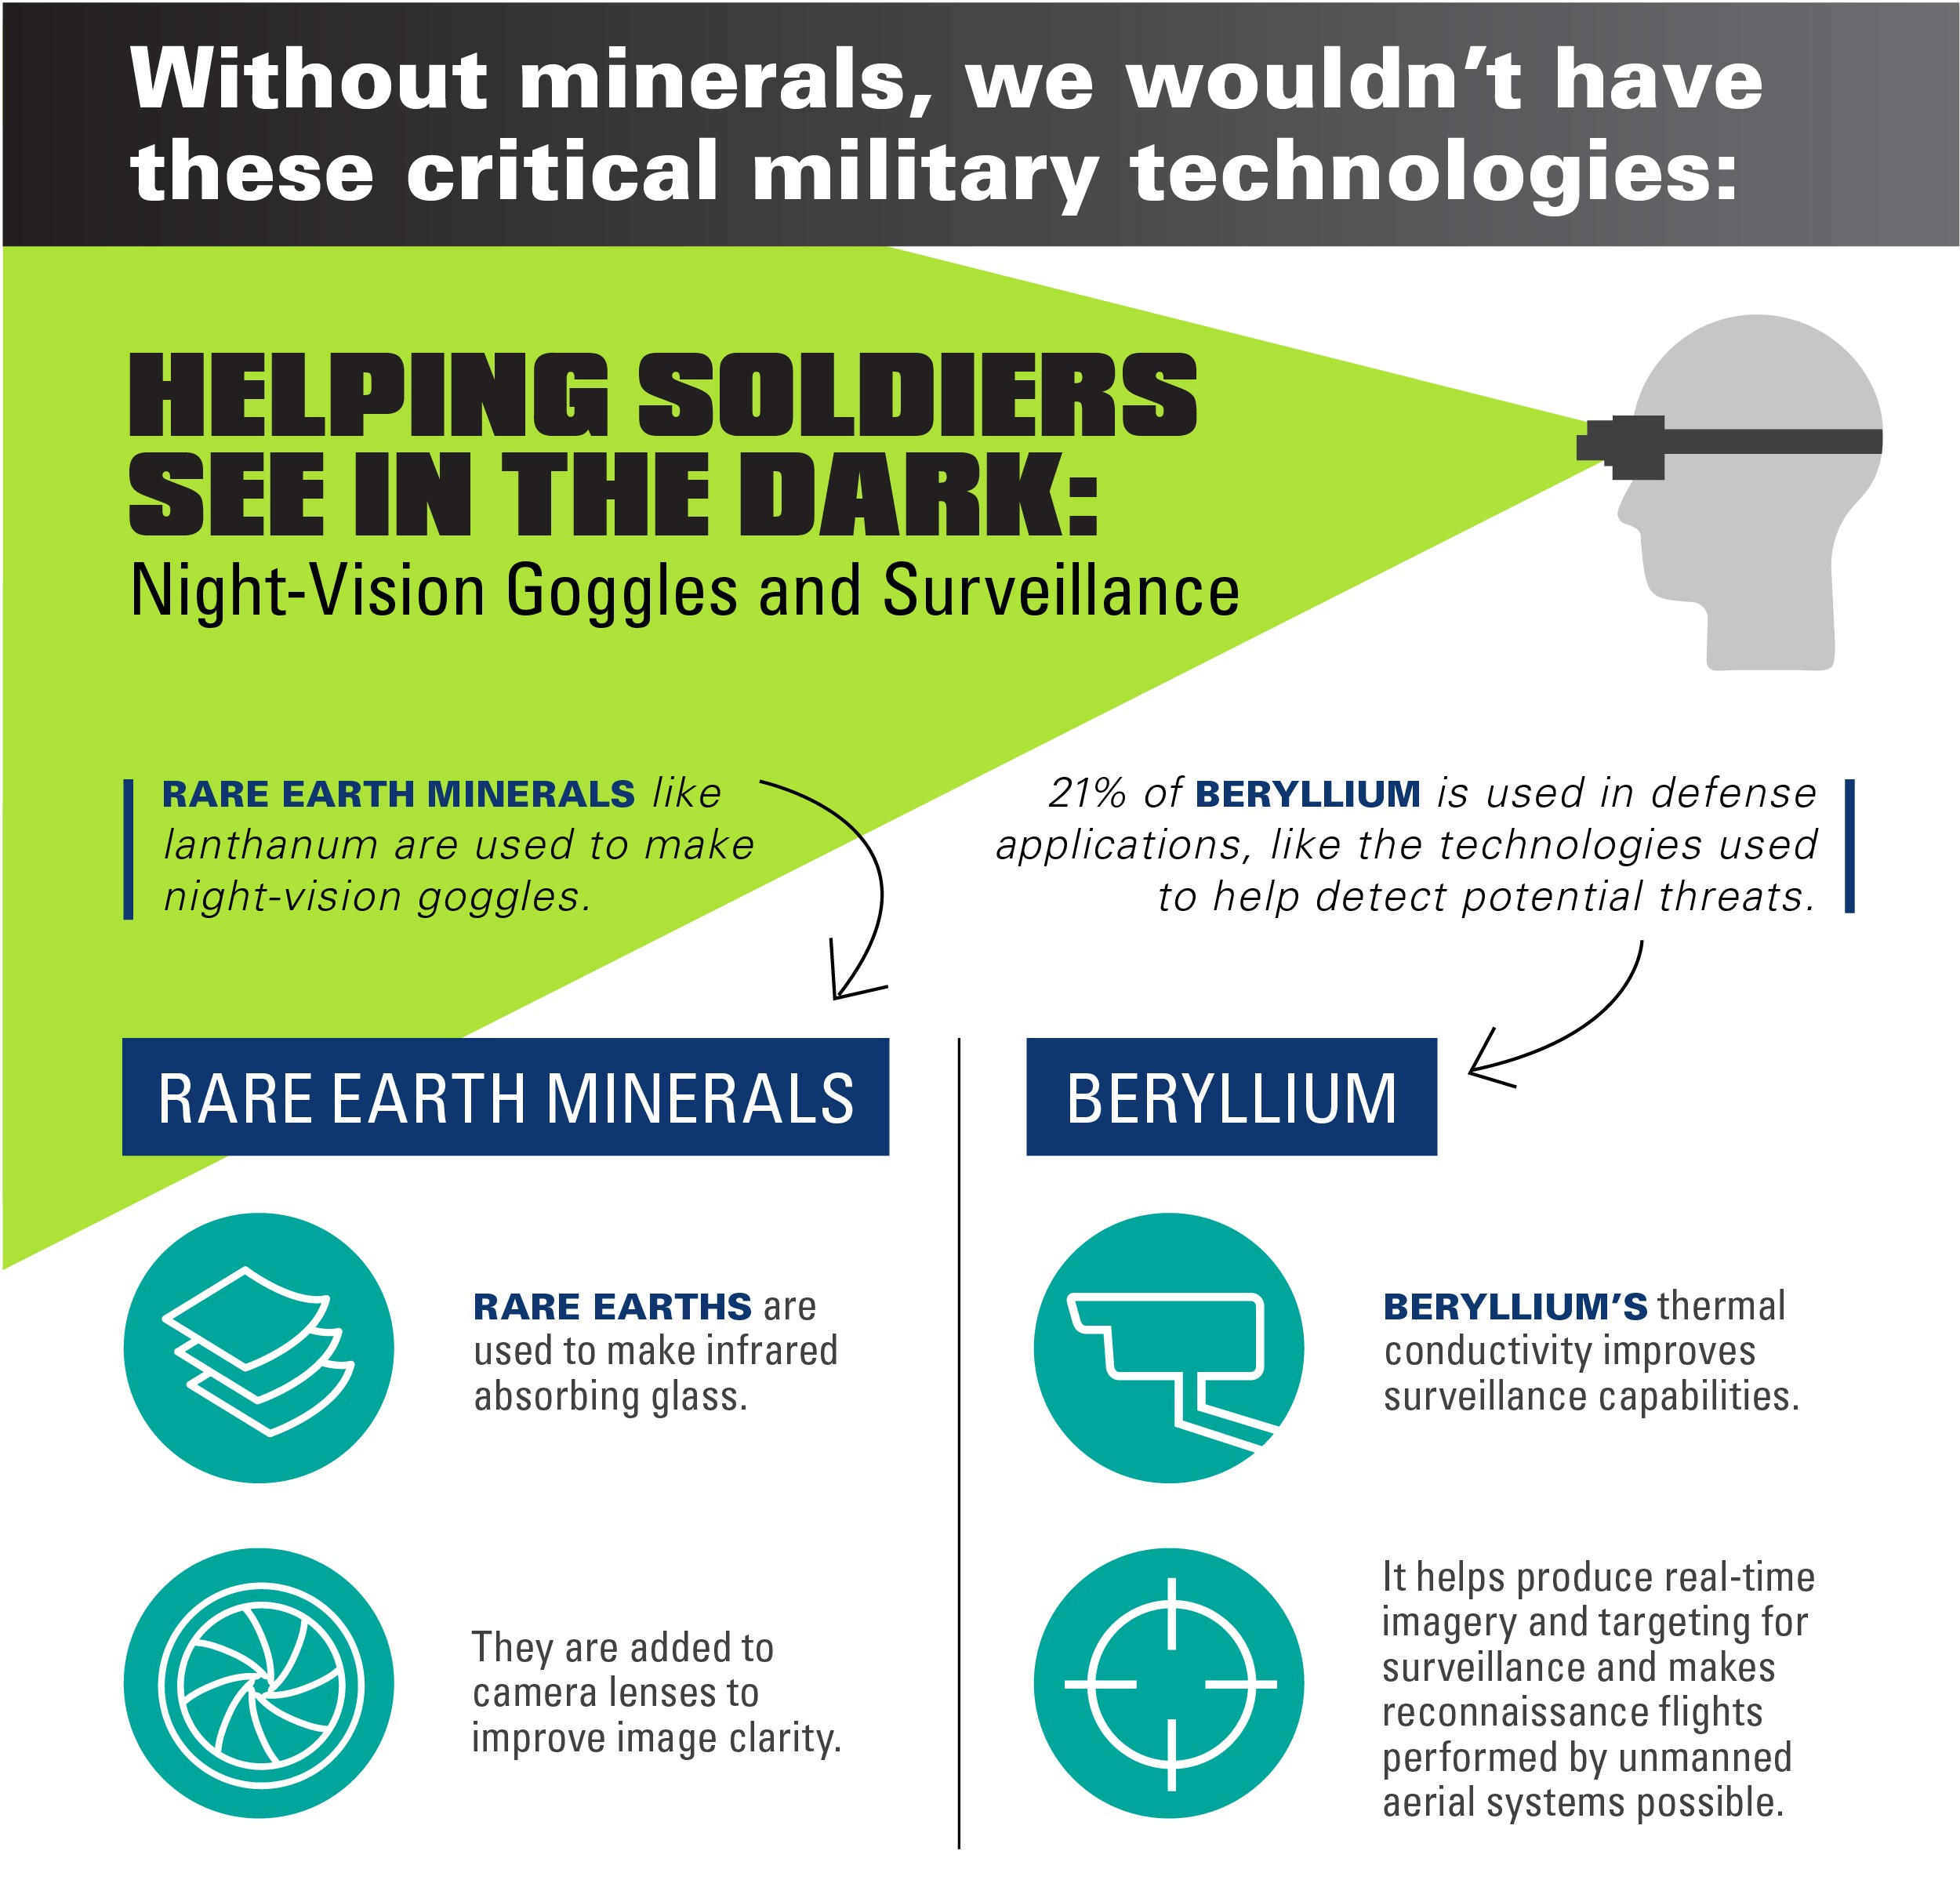 Securing our Military Supply Chain - Minerals Make Life